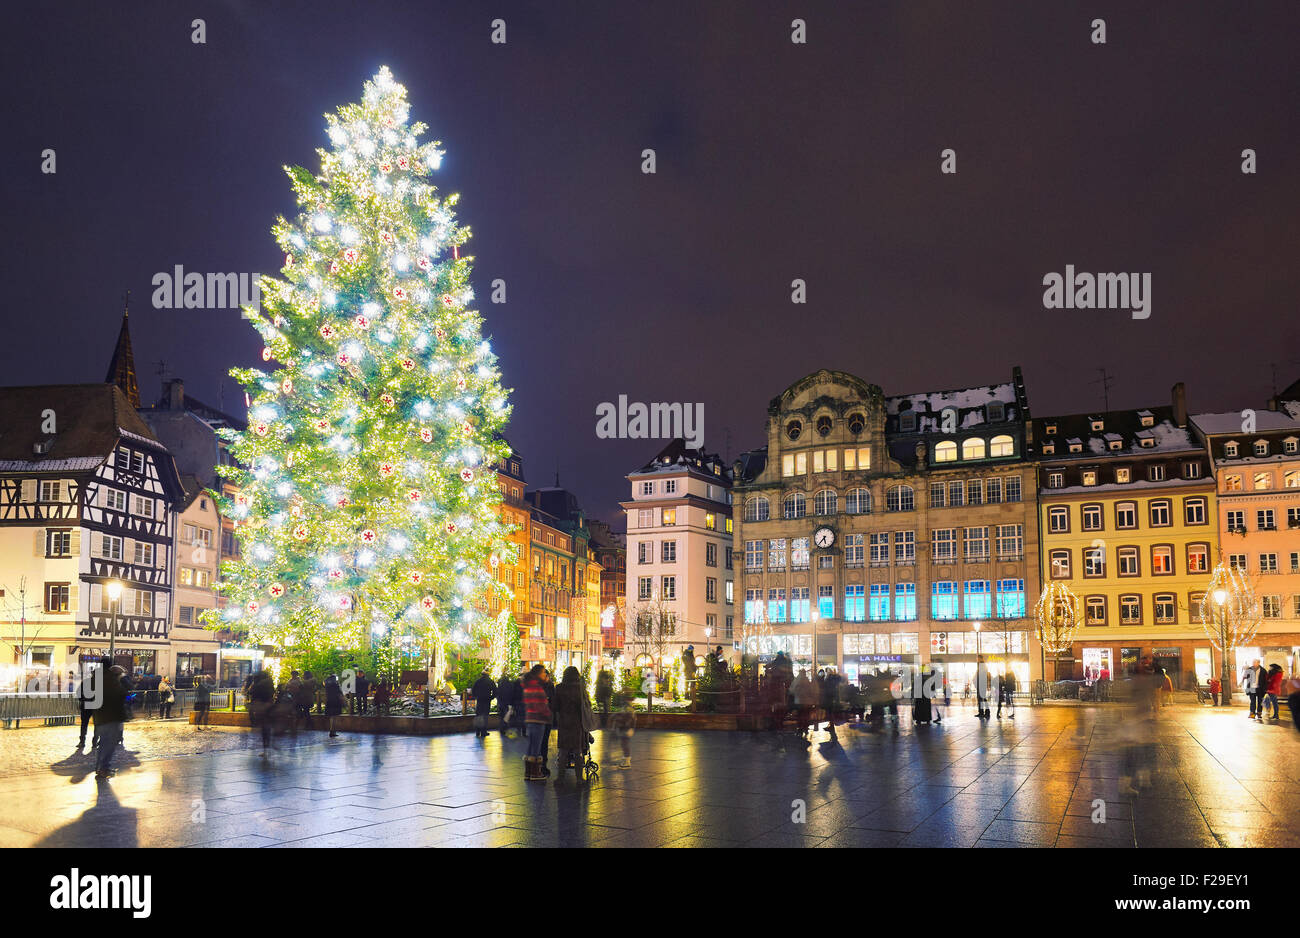 The great Christmas tree in Place Kleber at Christmastime. Strasbourg. Bas-Rhin. Alsace. France - Stock Image